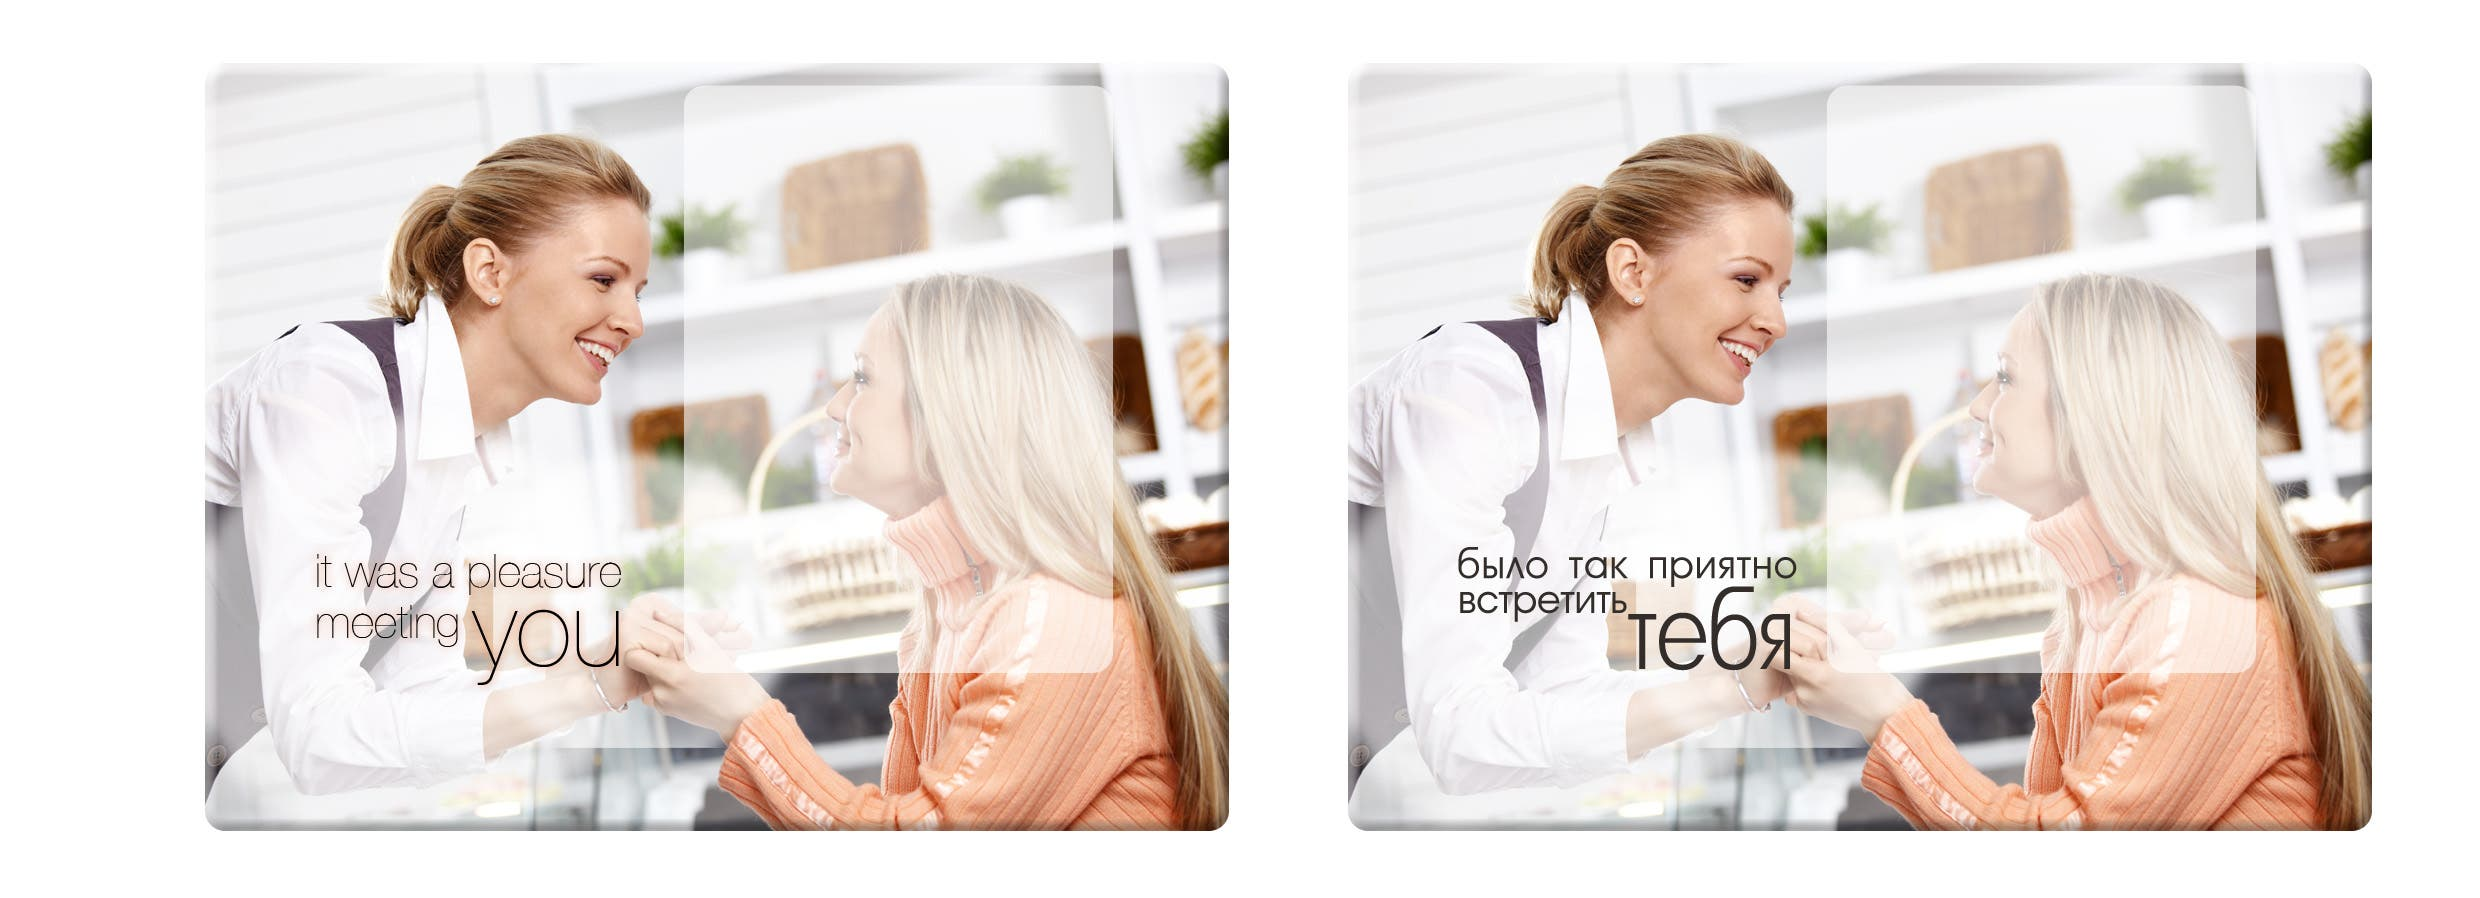 Translation of Photoshop files to Russian